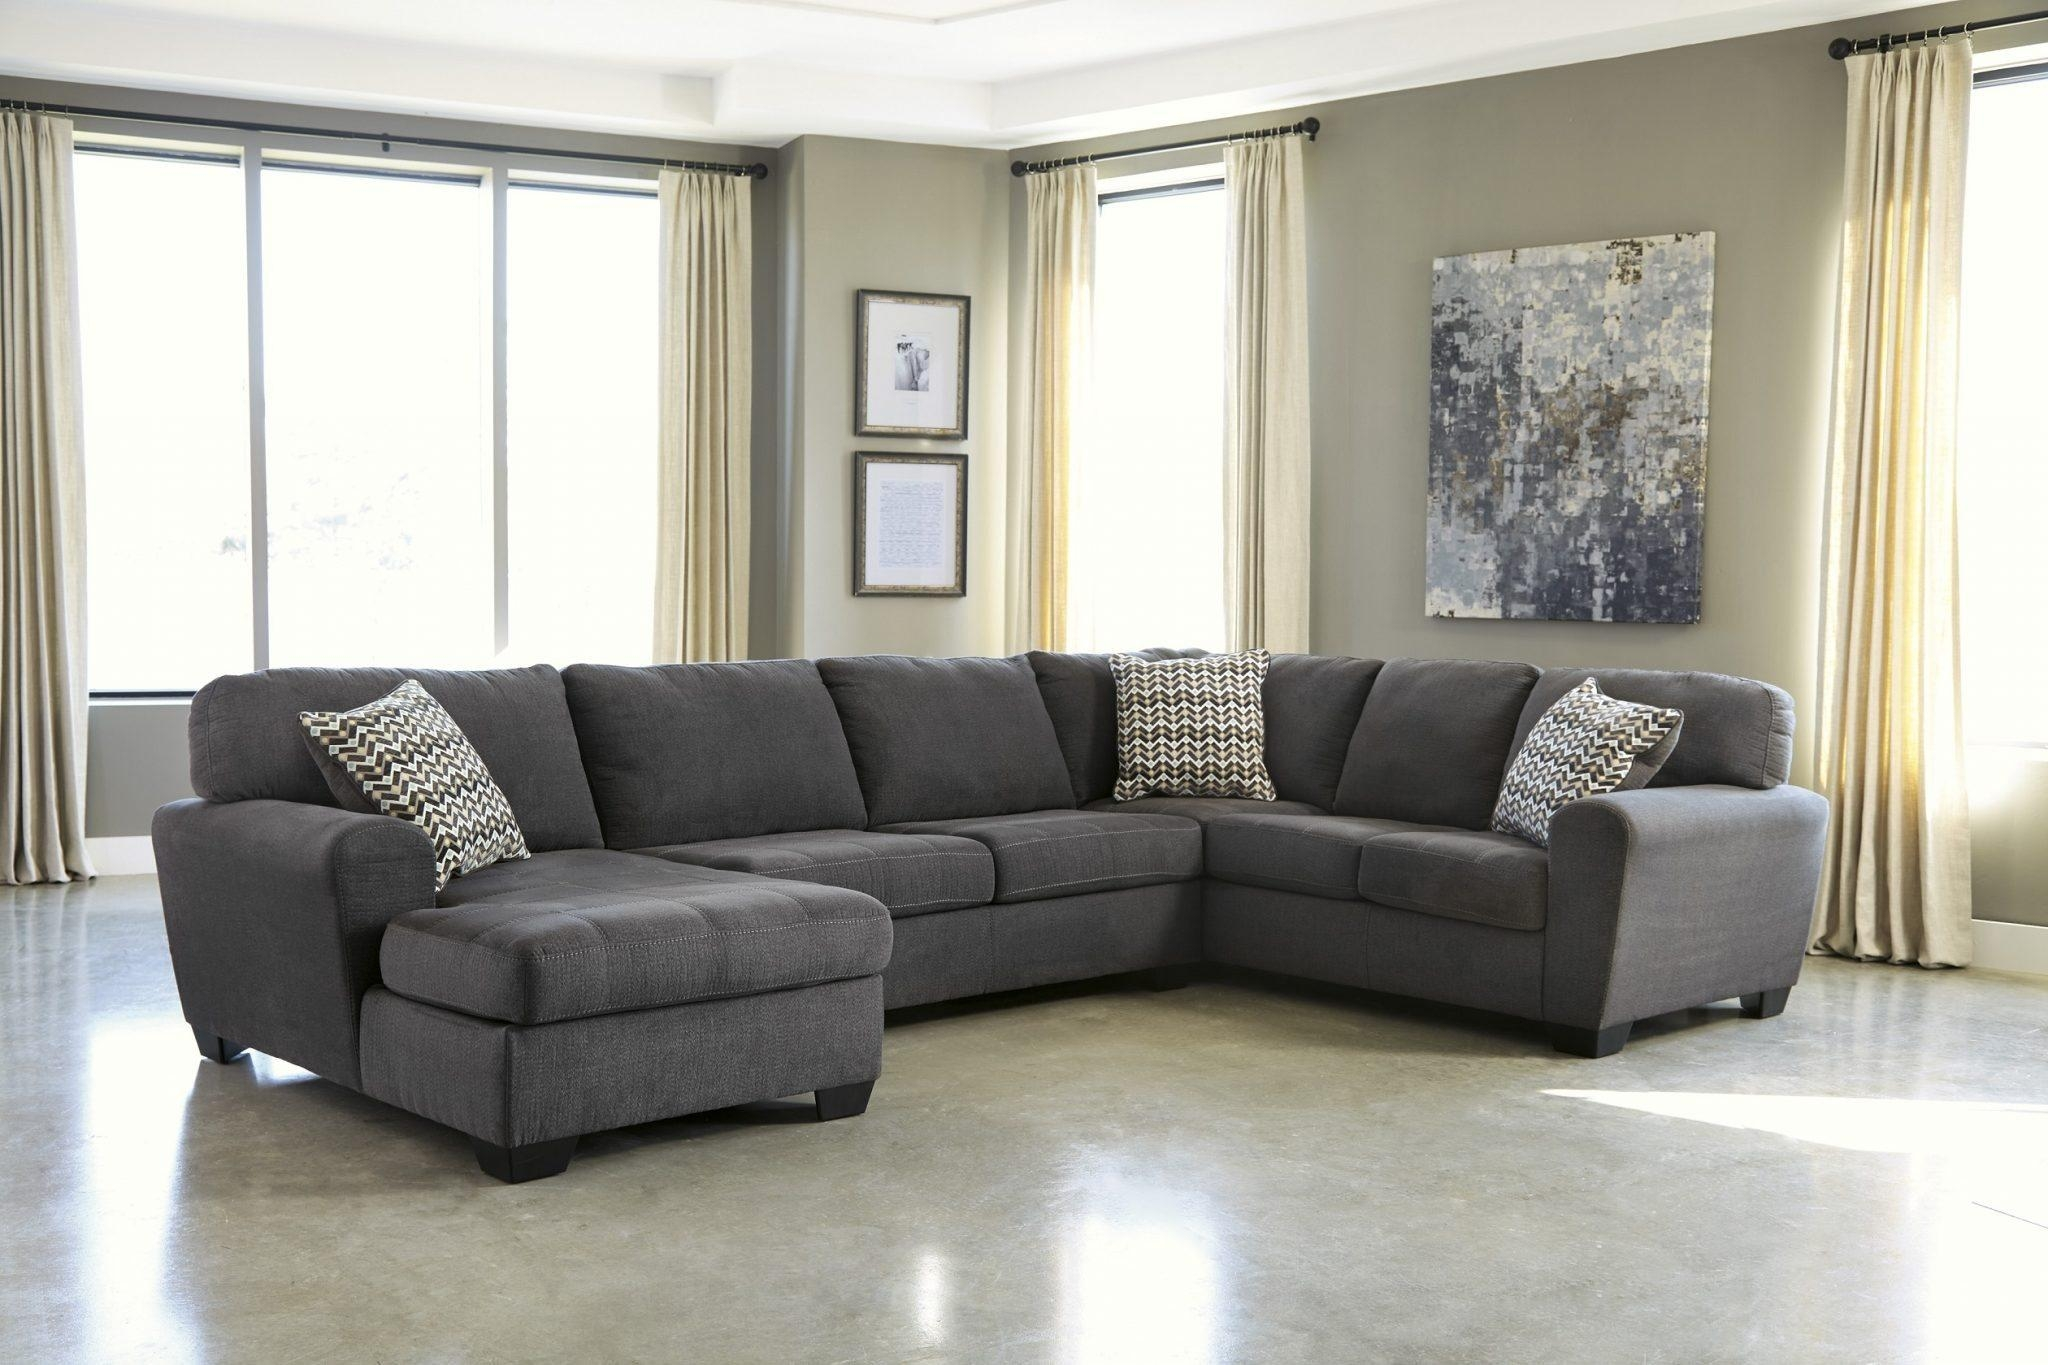 Chair & Sofa: Have An Interesting Living Room With Ashley Pertaining To Ashley Curved Sectional (Image 4 of 15)